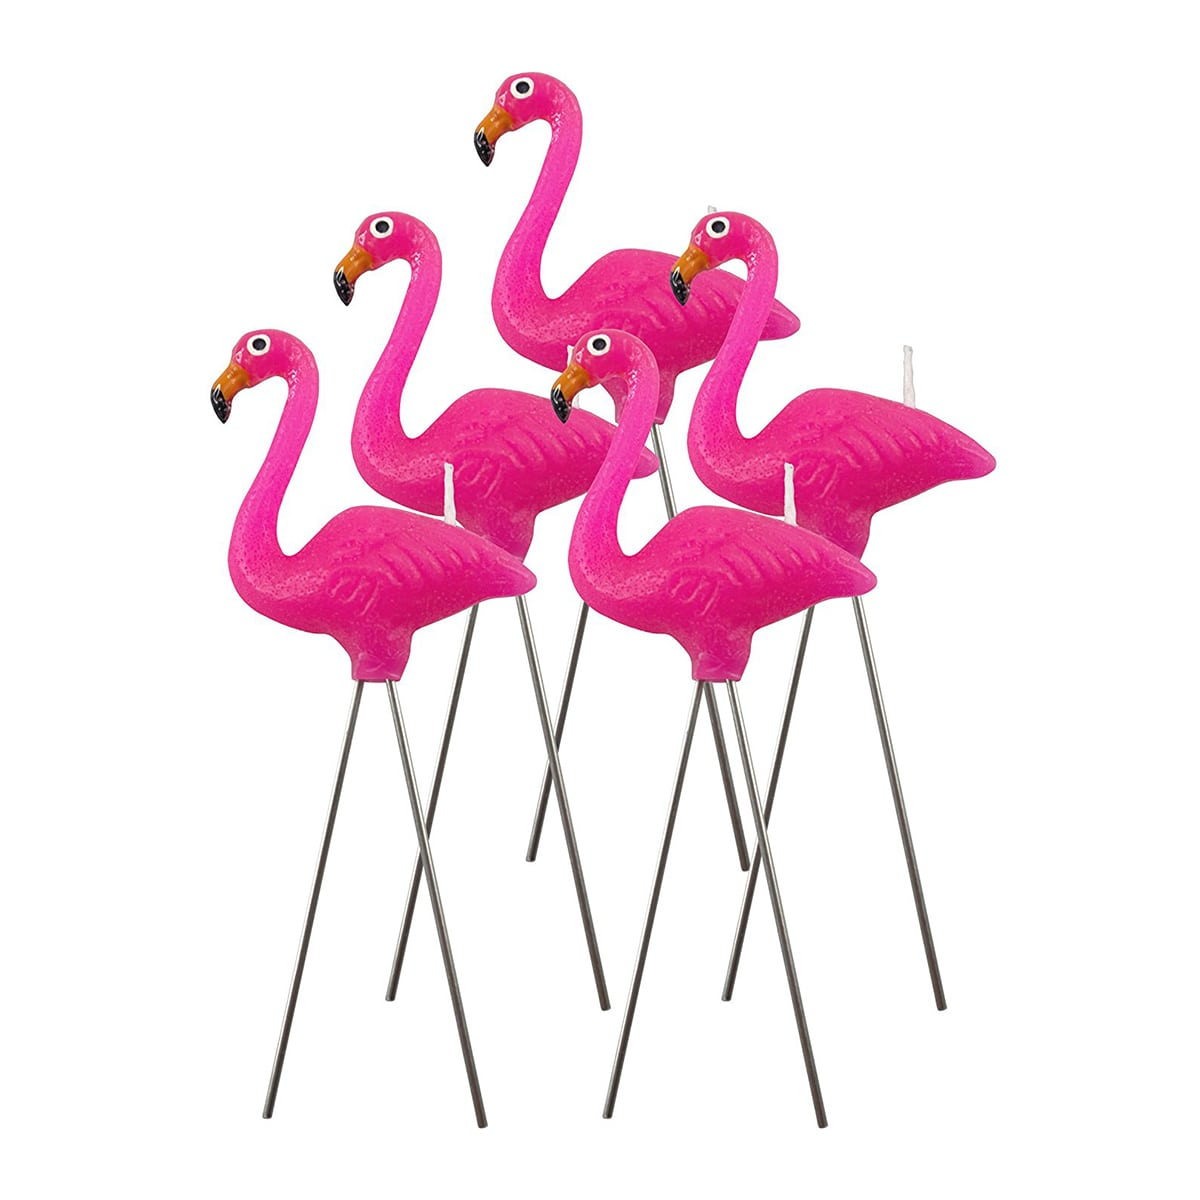 10 Flamingo Finds for Your Kitchen: gallery image 4